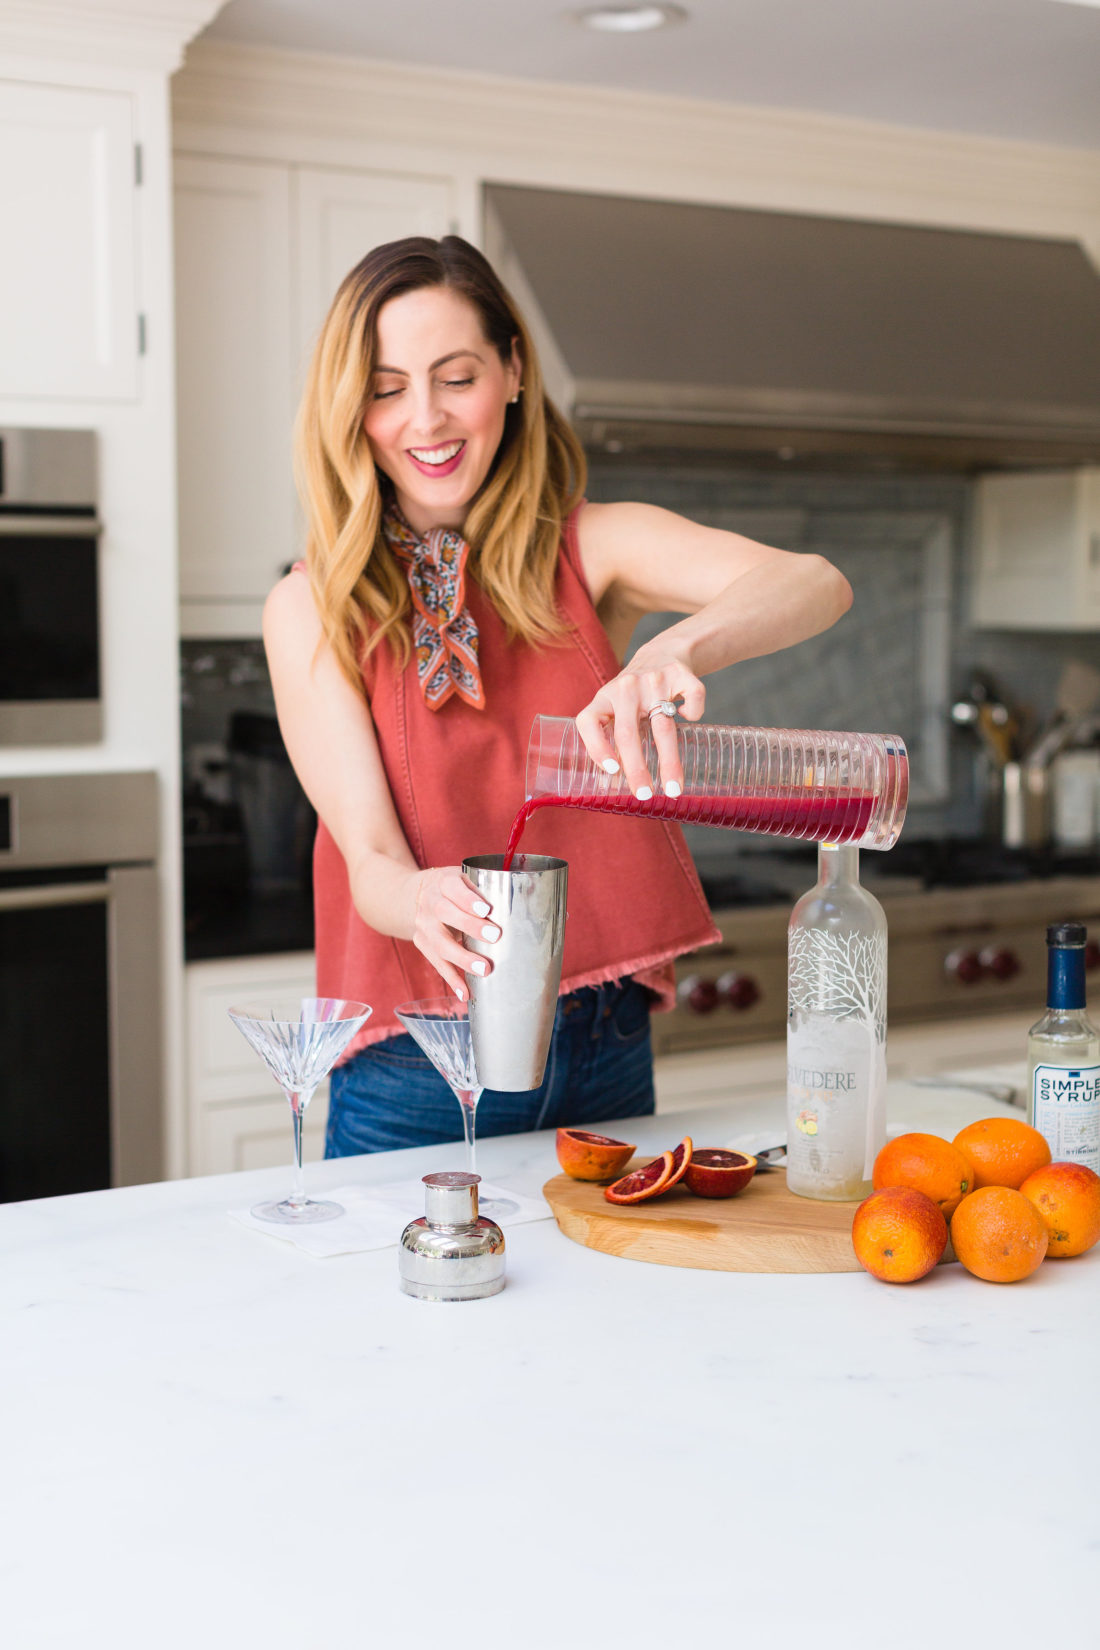 Eva Amurri Martino adds freshly squeezed blood orange juice to a cocktail shaker